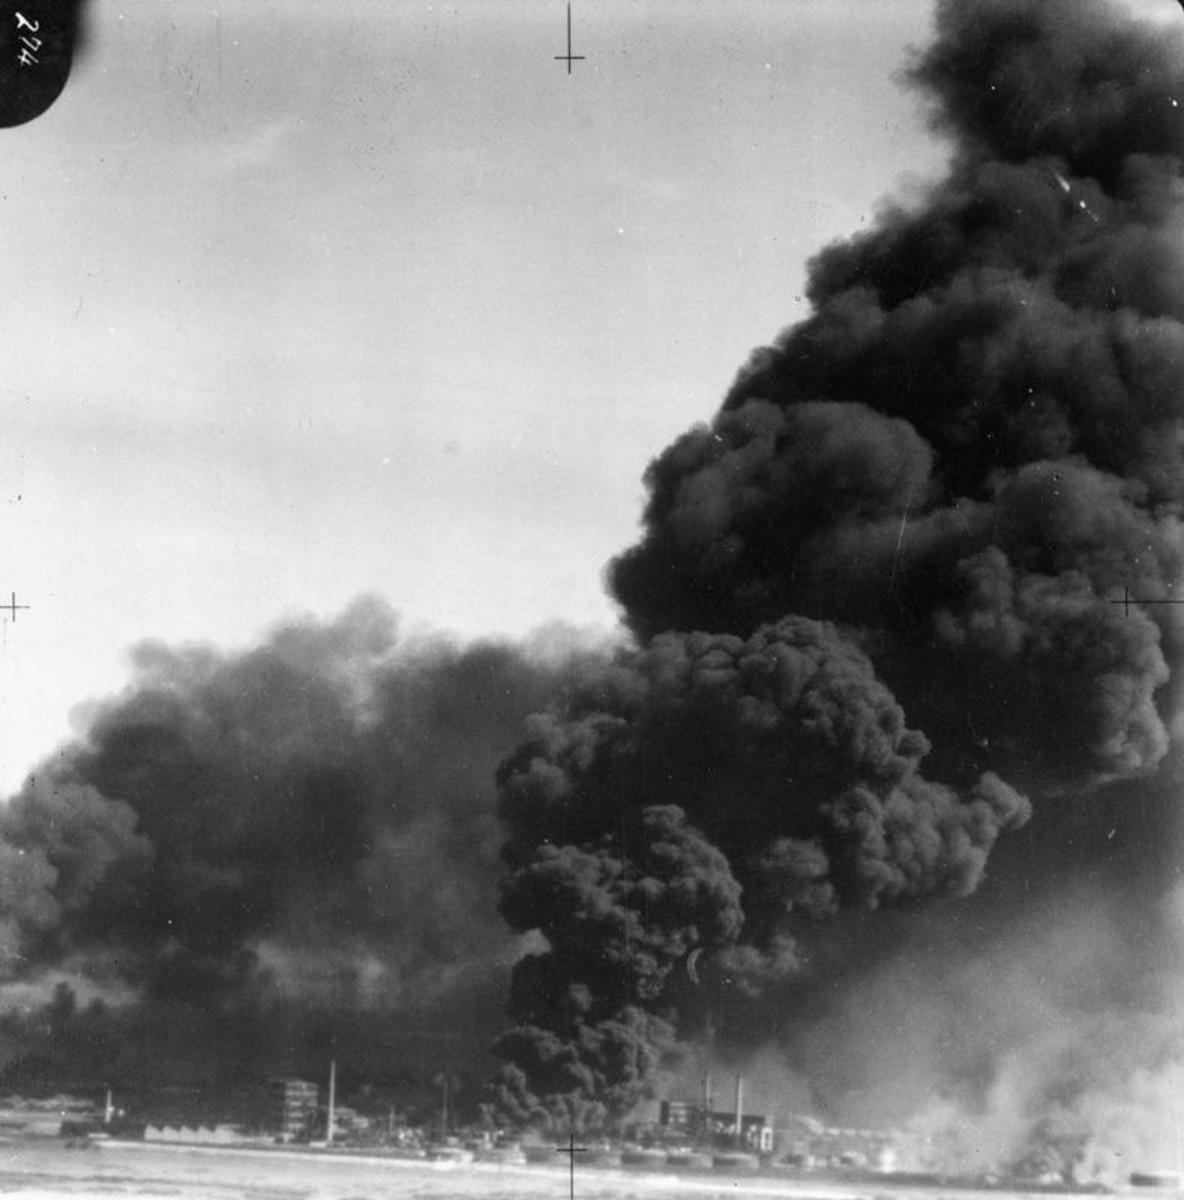 26-29 May 1940 Burning oil tanks at Dunkirk.